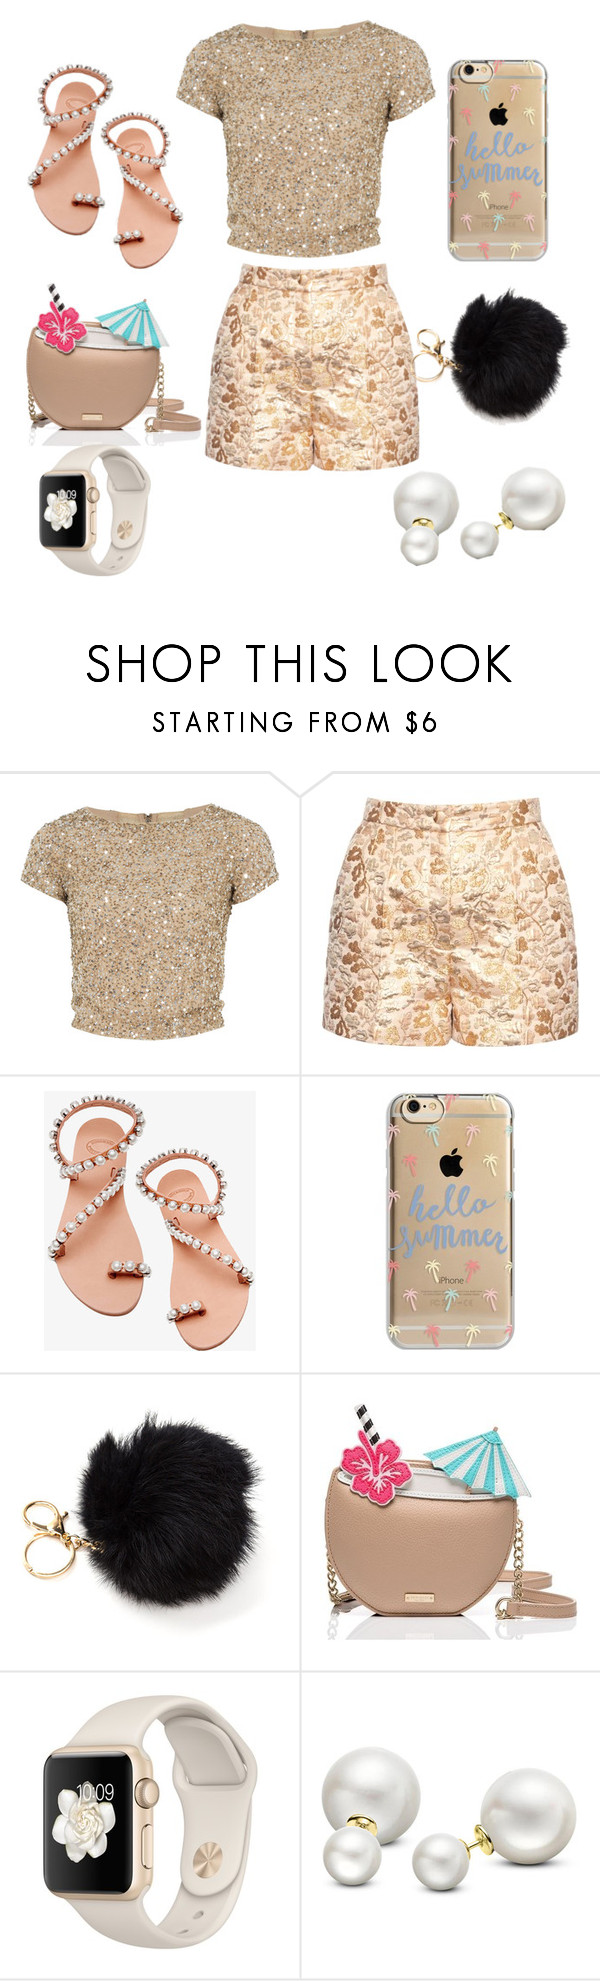 """""""Untitled #119"""" by swag345 ❤ liked on Polyvore featuring Alice + Olivia, Dolce&Gabbana, Elina Linardaki, Agent 18, Kate Spade and Allurez"""